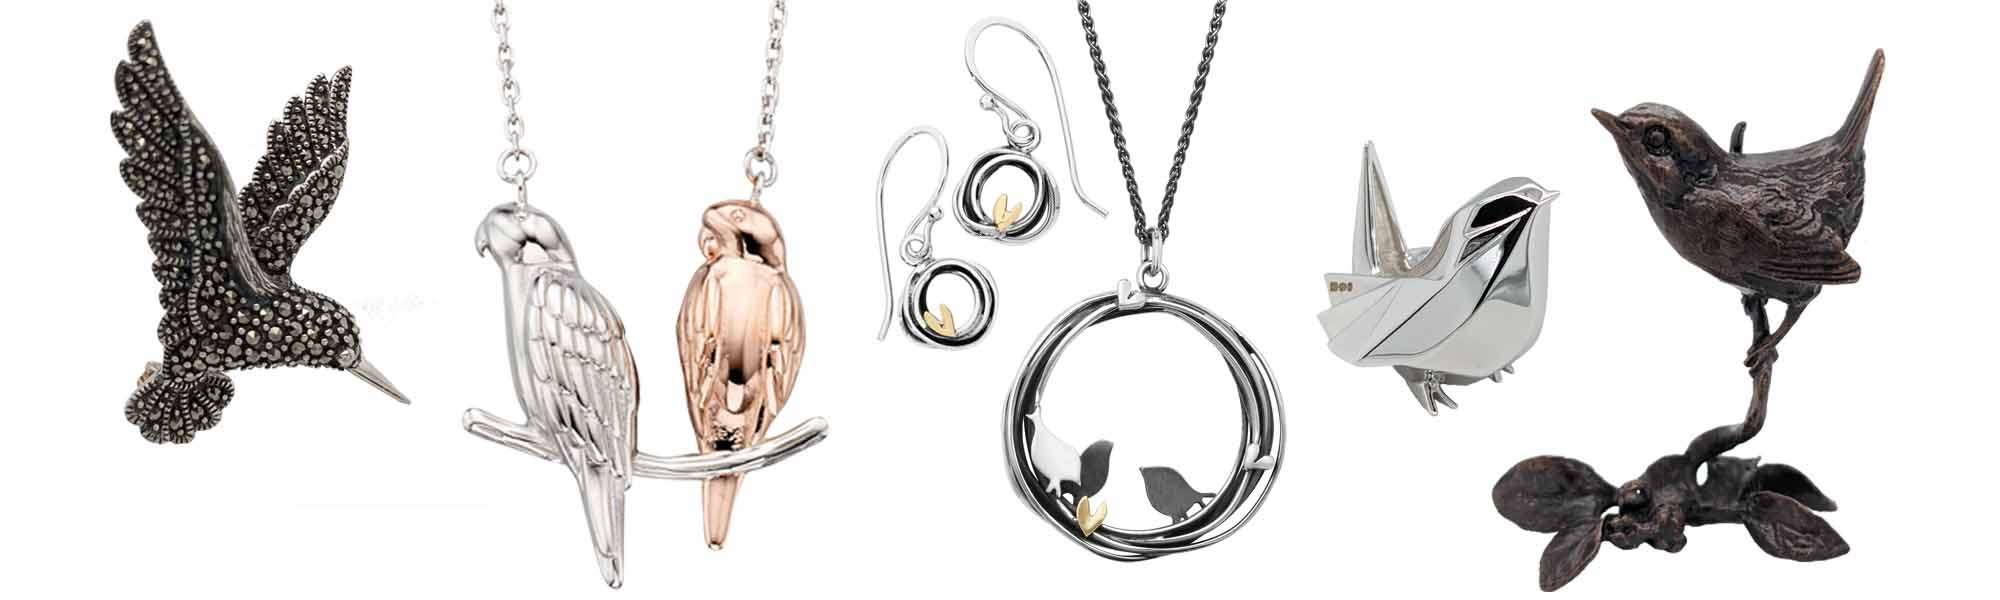 Sally Thornton jewellers blog on bird jewellery fromThorntons jewellers Kettering Northampton